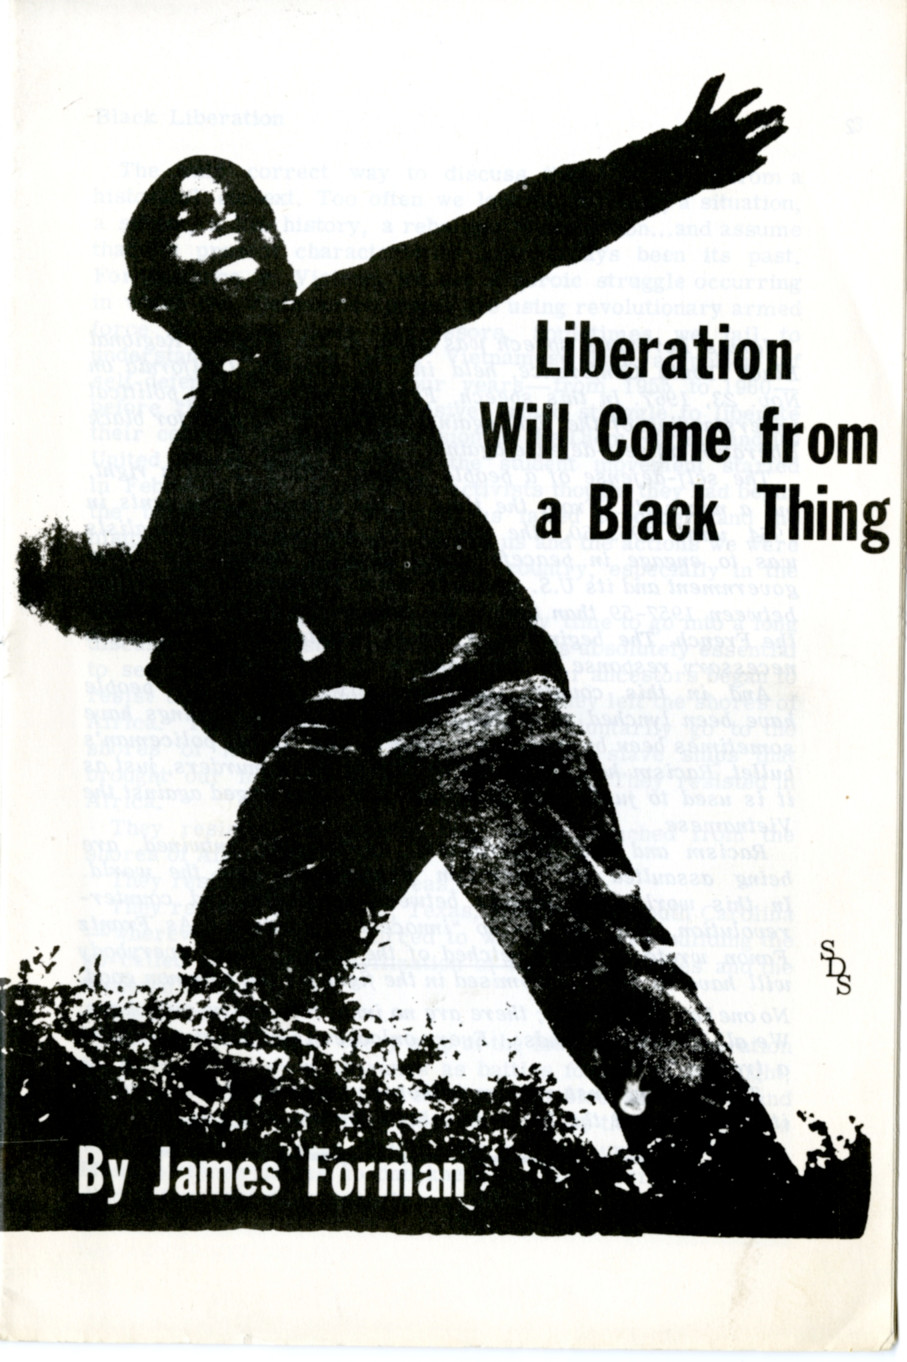 Liberation will come from a Black thing